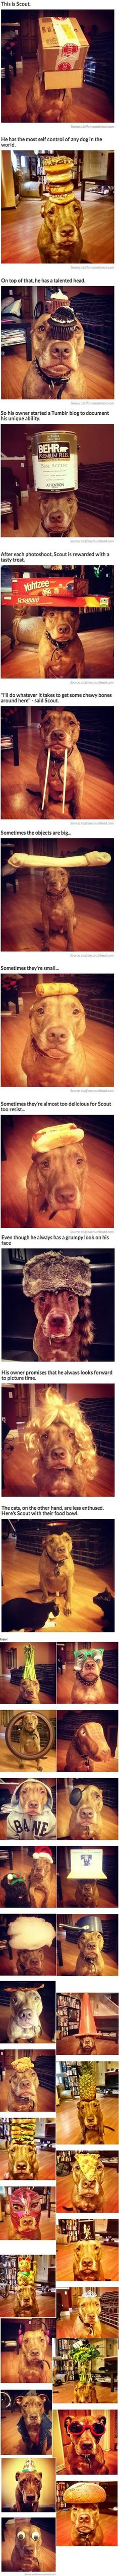 APW: This Dog Can Balance Anything On His Head. You'll Burst Out Laughing Till You Cry At What His Owner Has Tried… LOL!